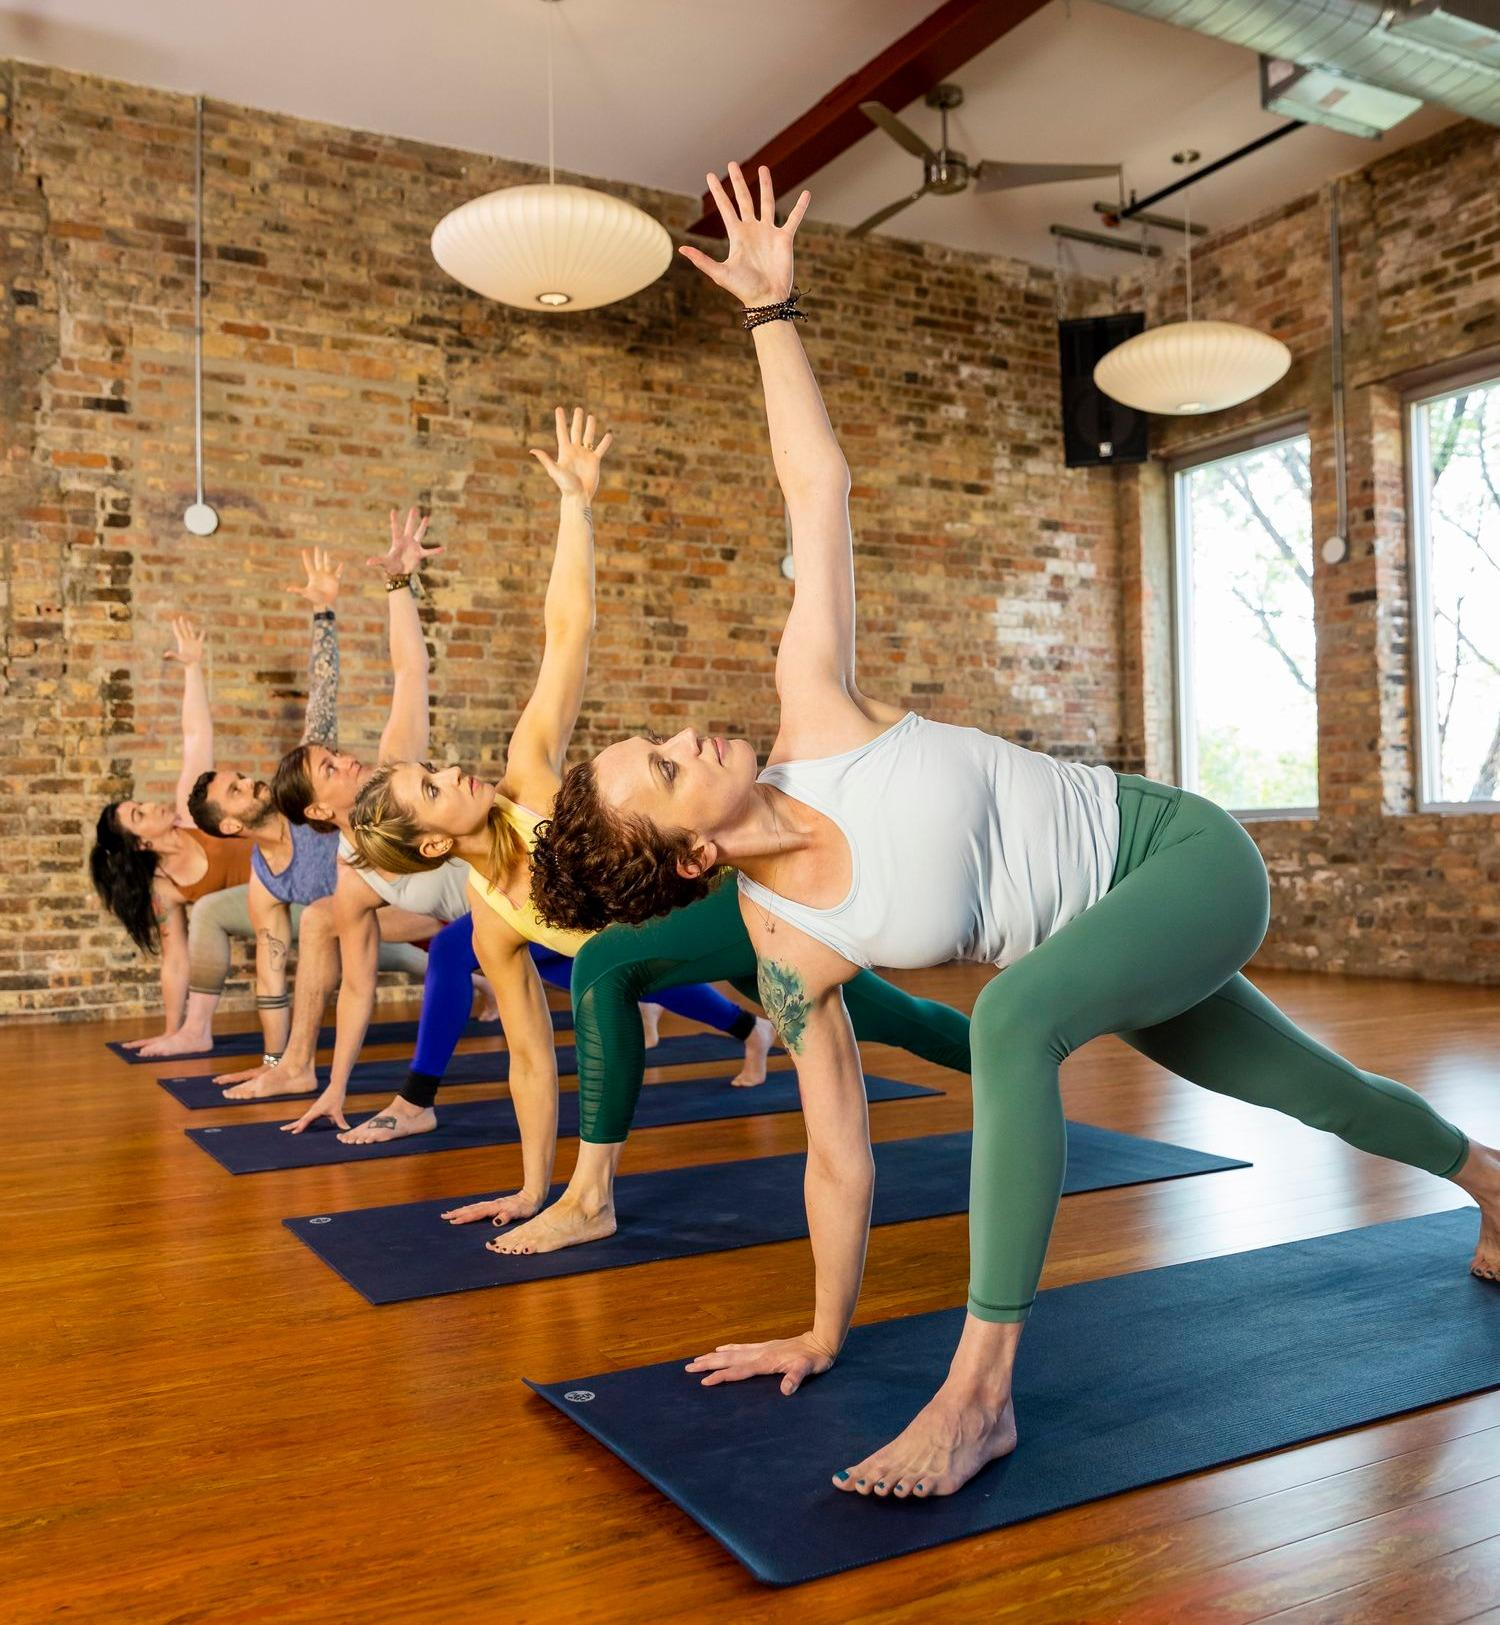 Get into your Zen mode at Chicago Athletic Clubs' Yoga/Mindbody classes!